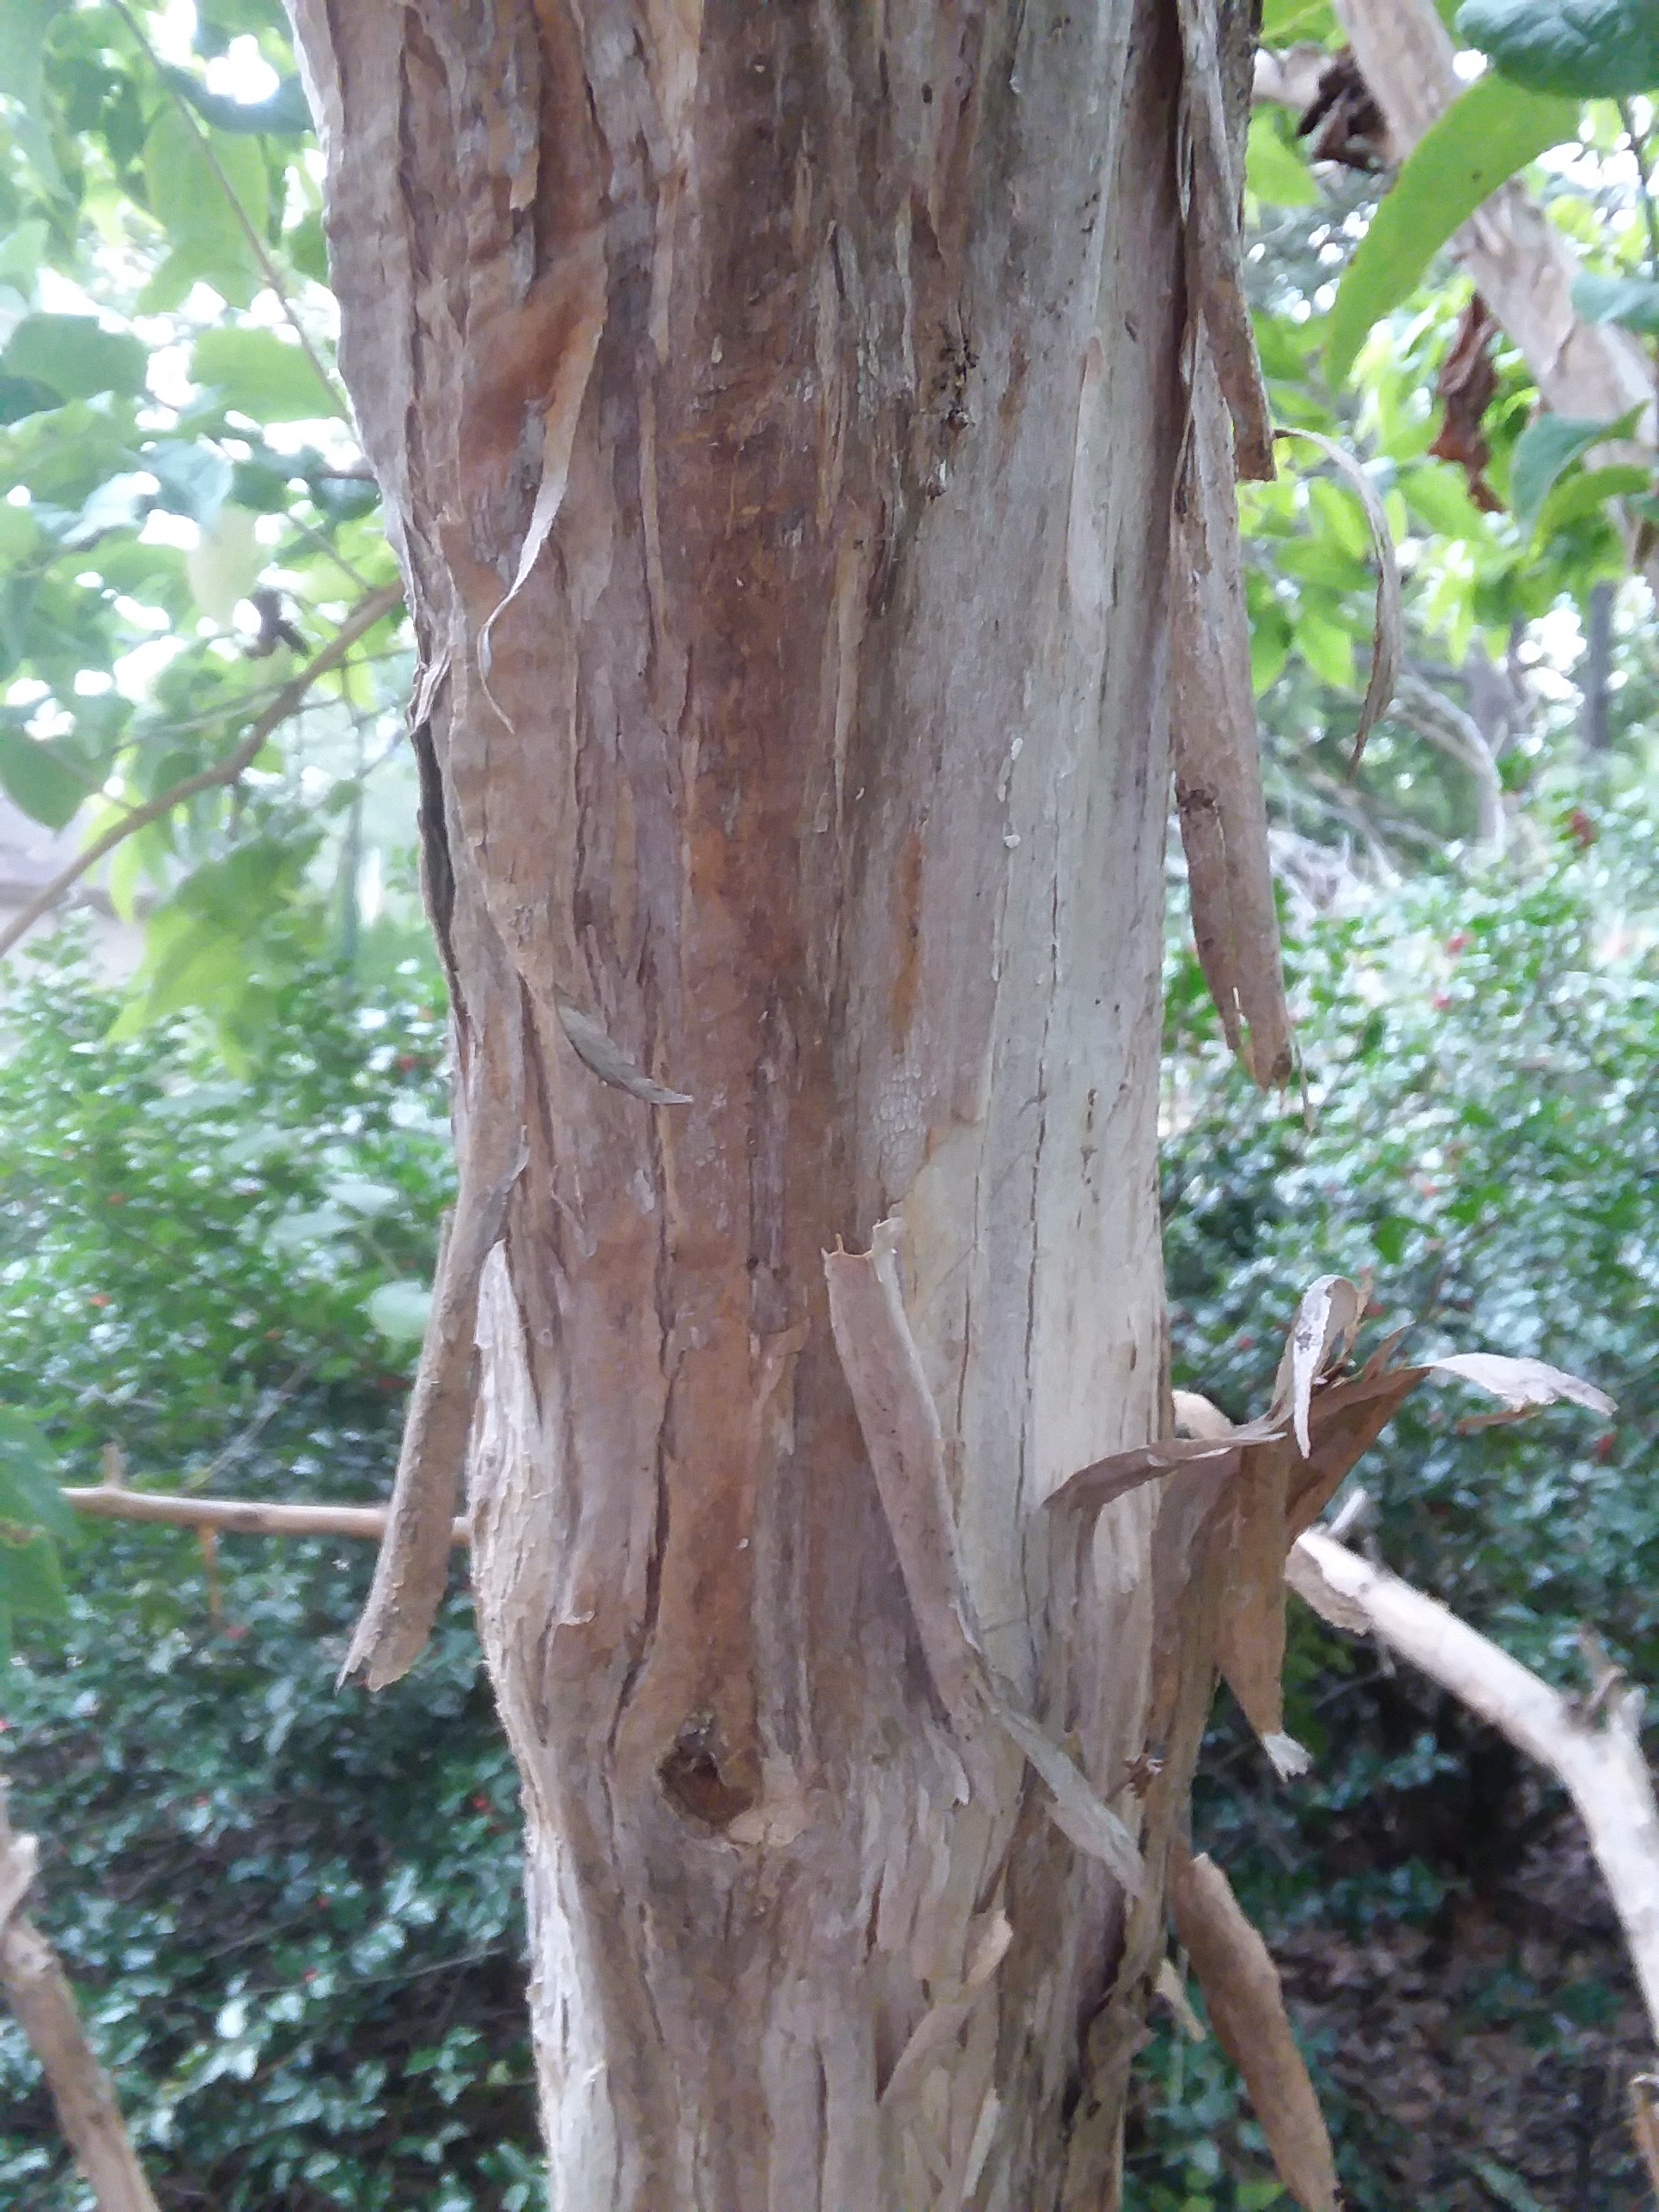 Seven-Sons Flower Trunk with Exfoliating Bark